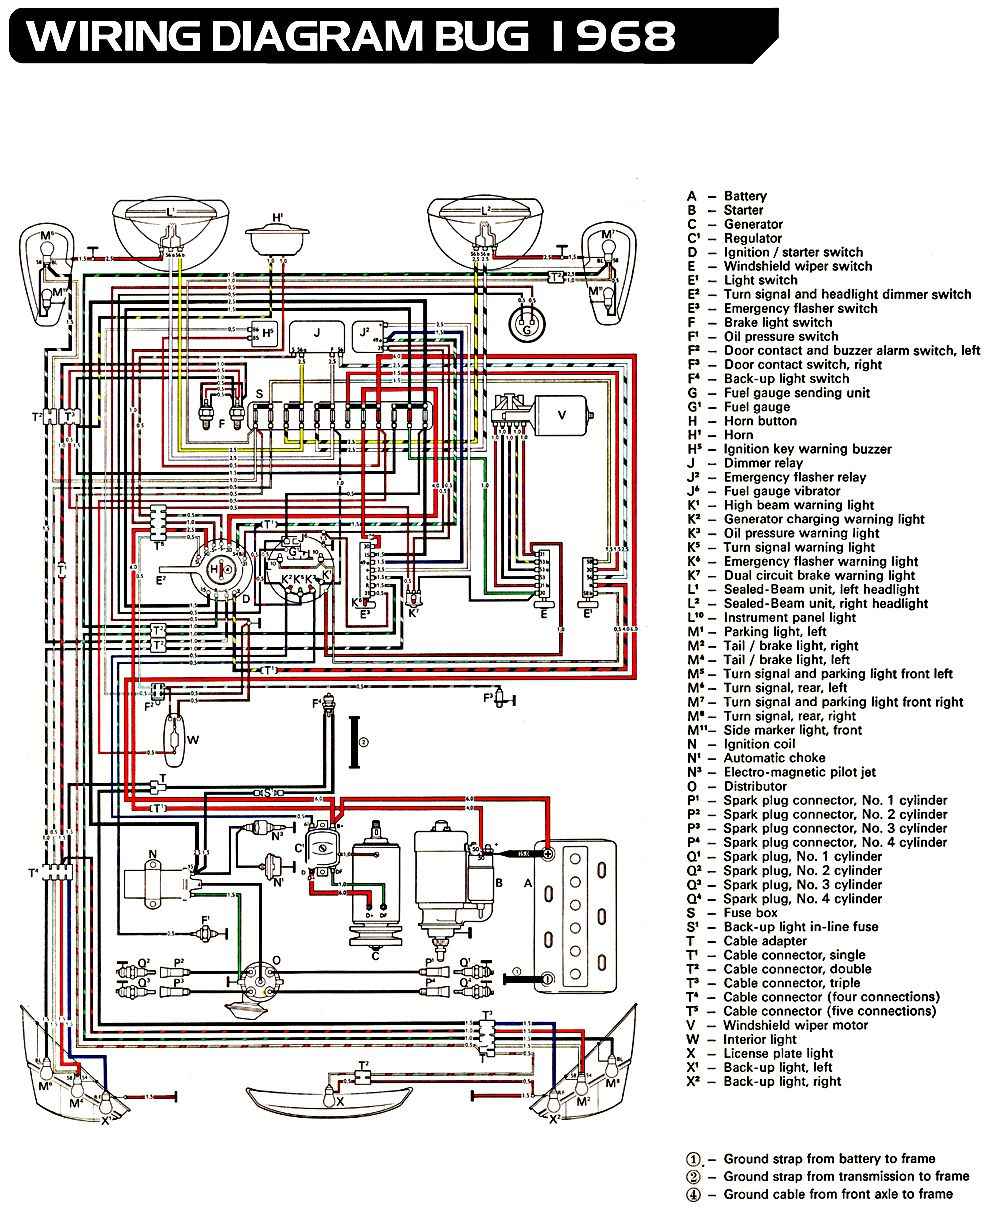 3a1908112d3826270ed5e3be362292bf vw bug ignition wiring diagram 73 vw wiring diagram free 1969 vw beetle wiring diagram at bayanpartner.co